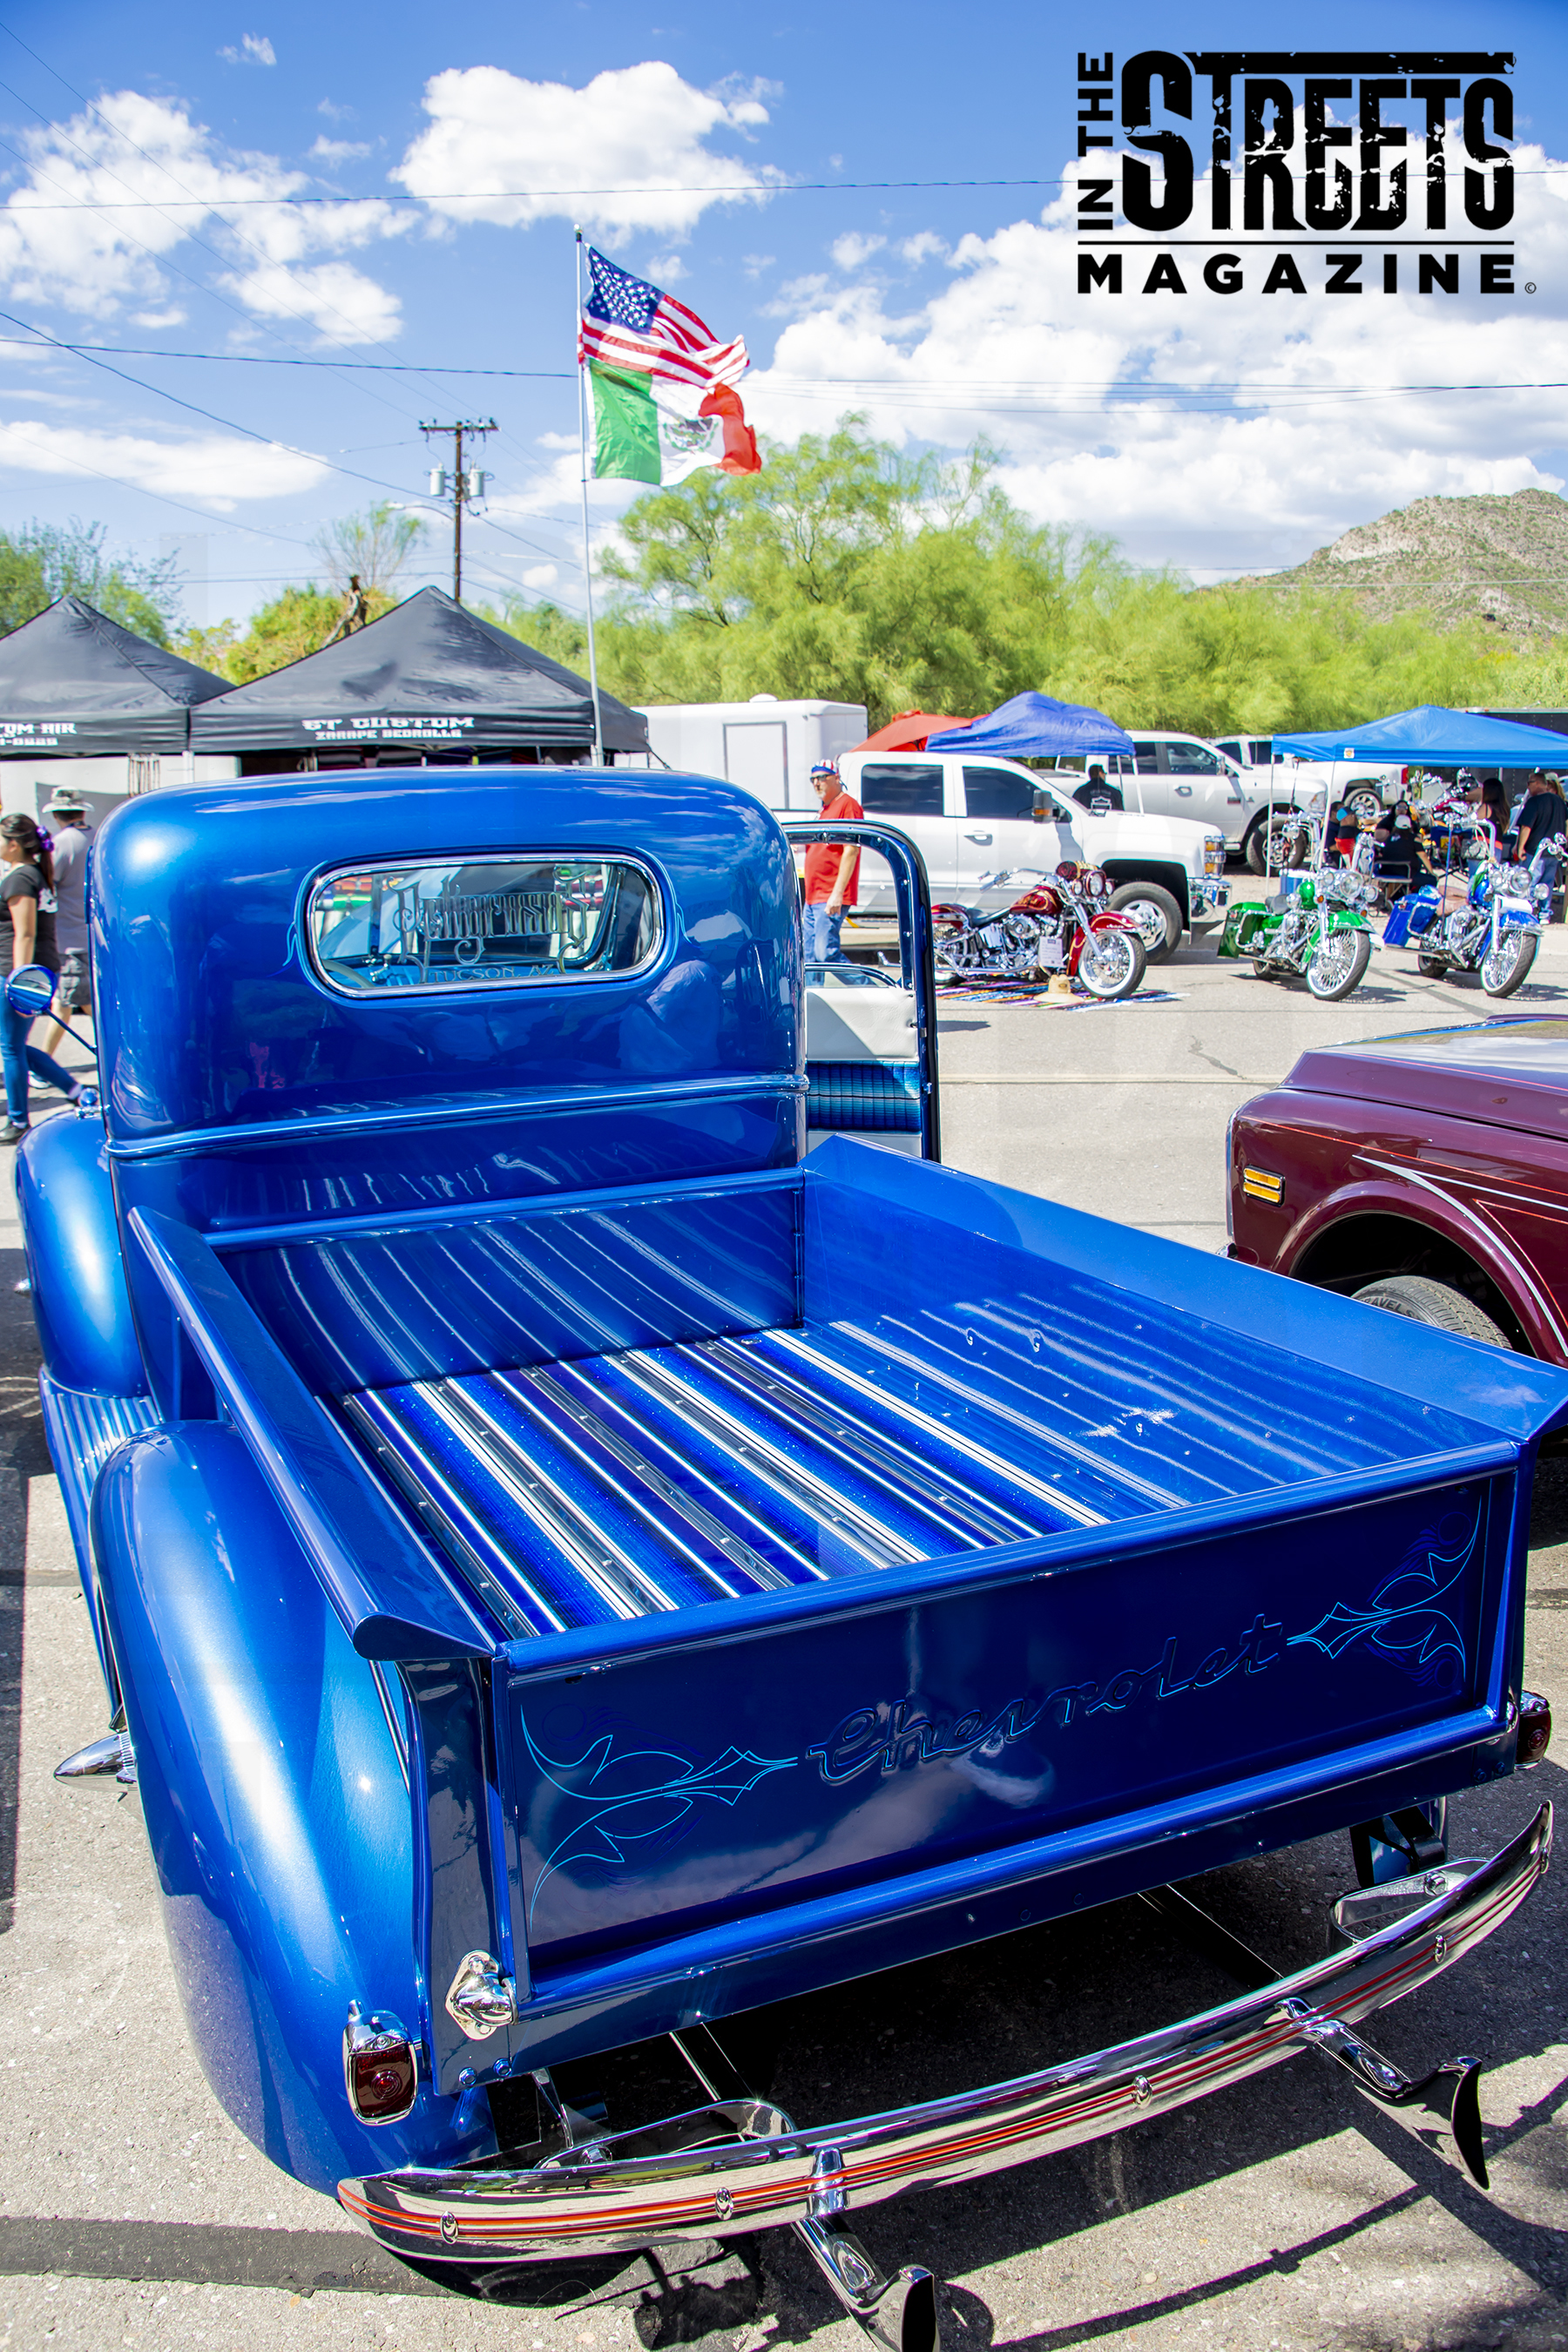 Superior Car Show In The Streets Magazine - Tucson classic car show 2018